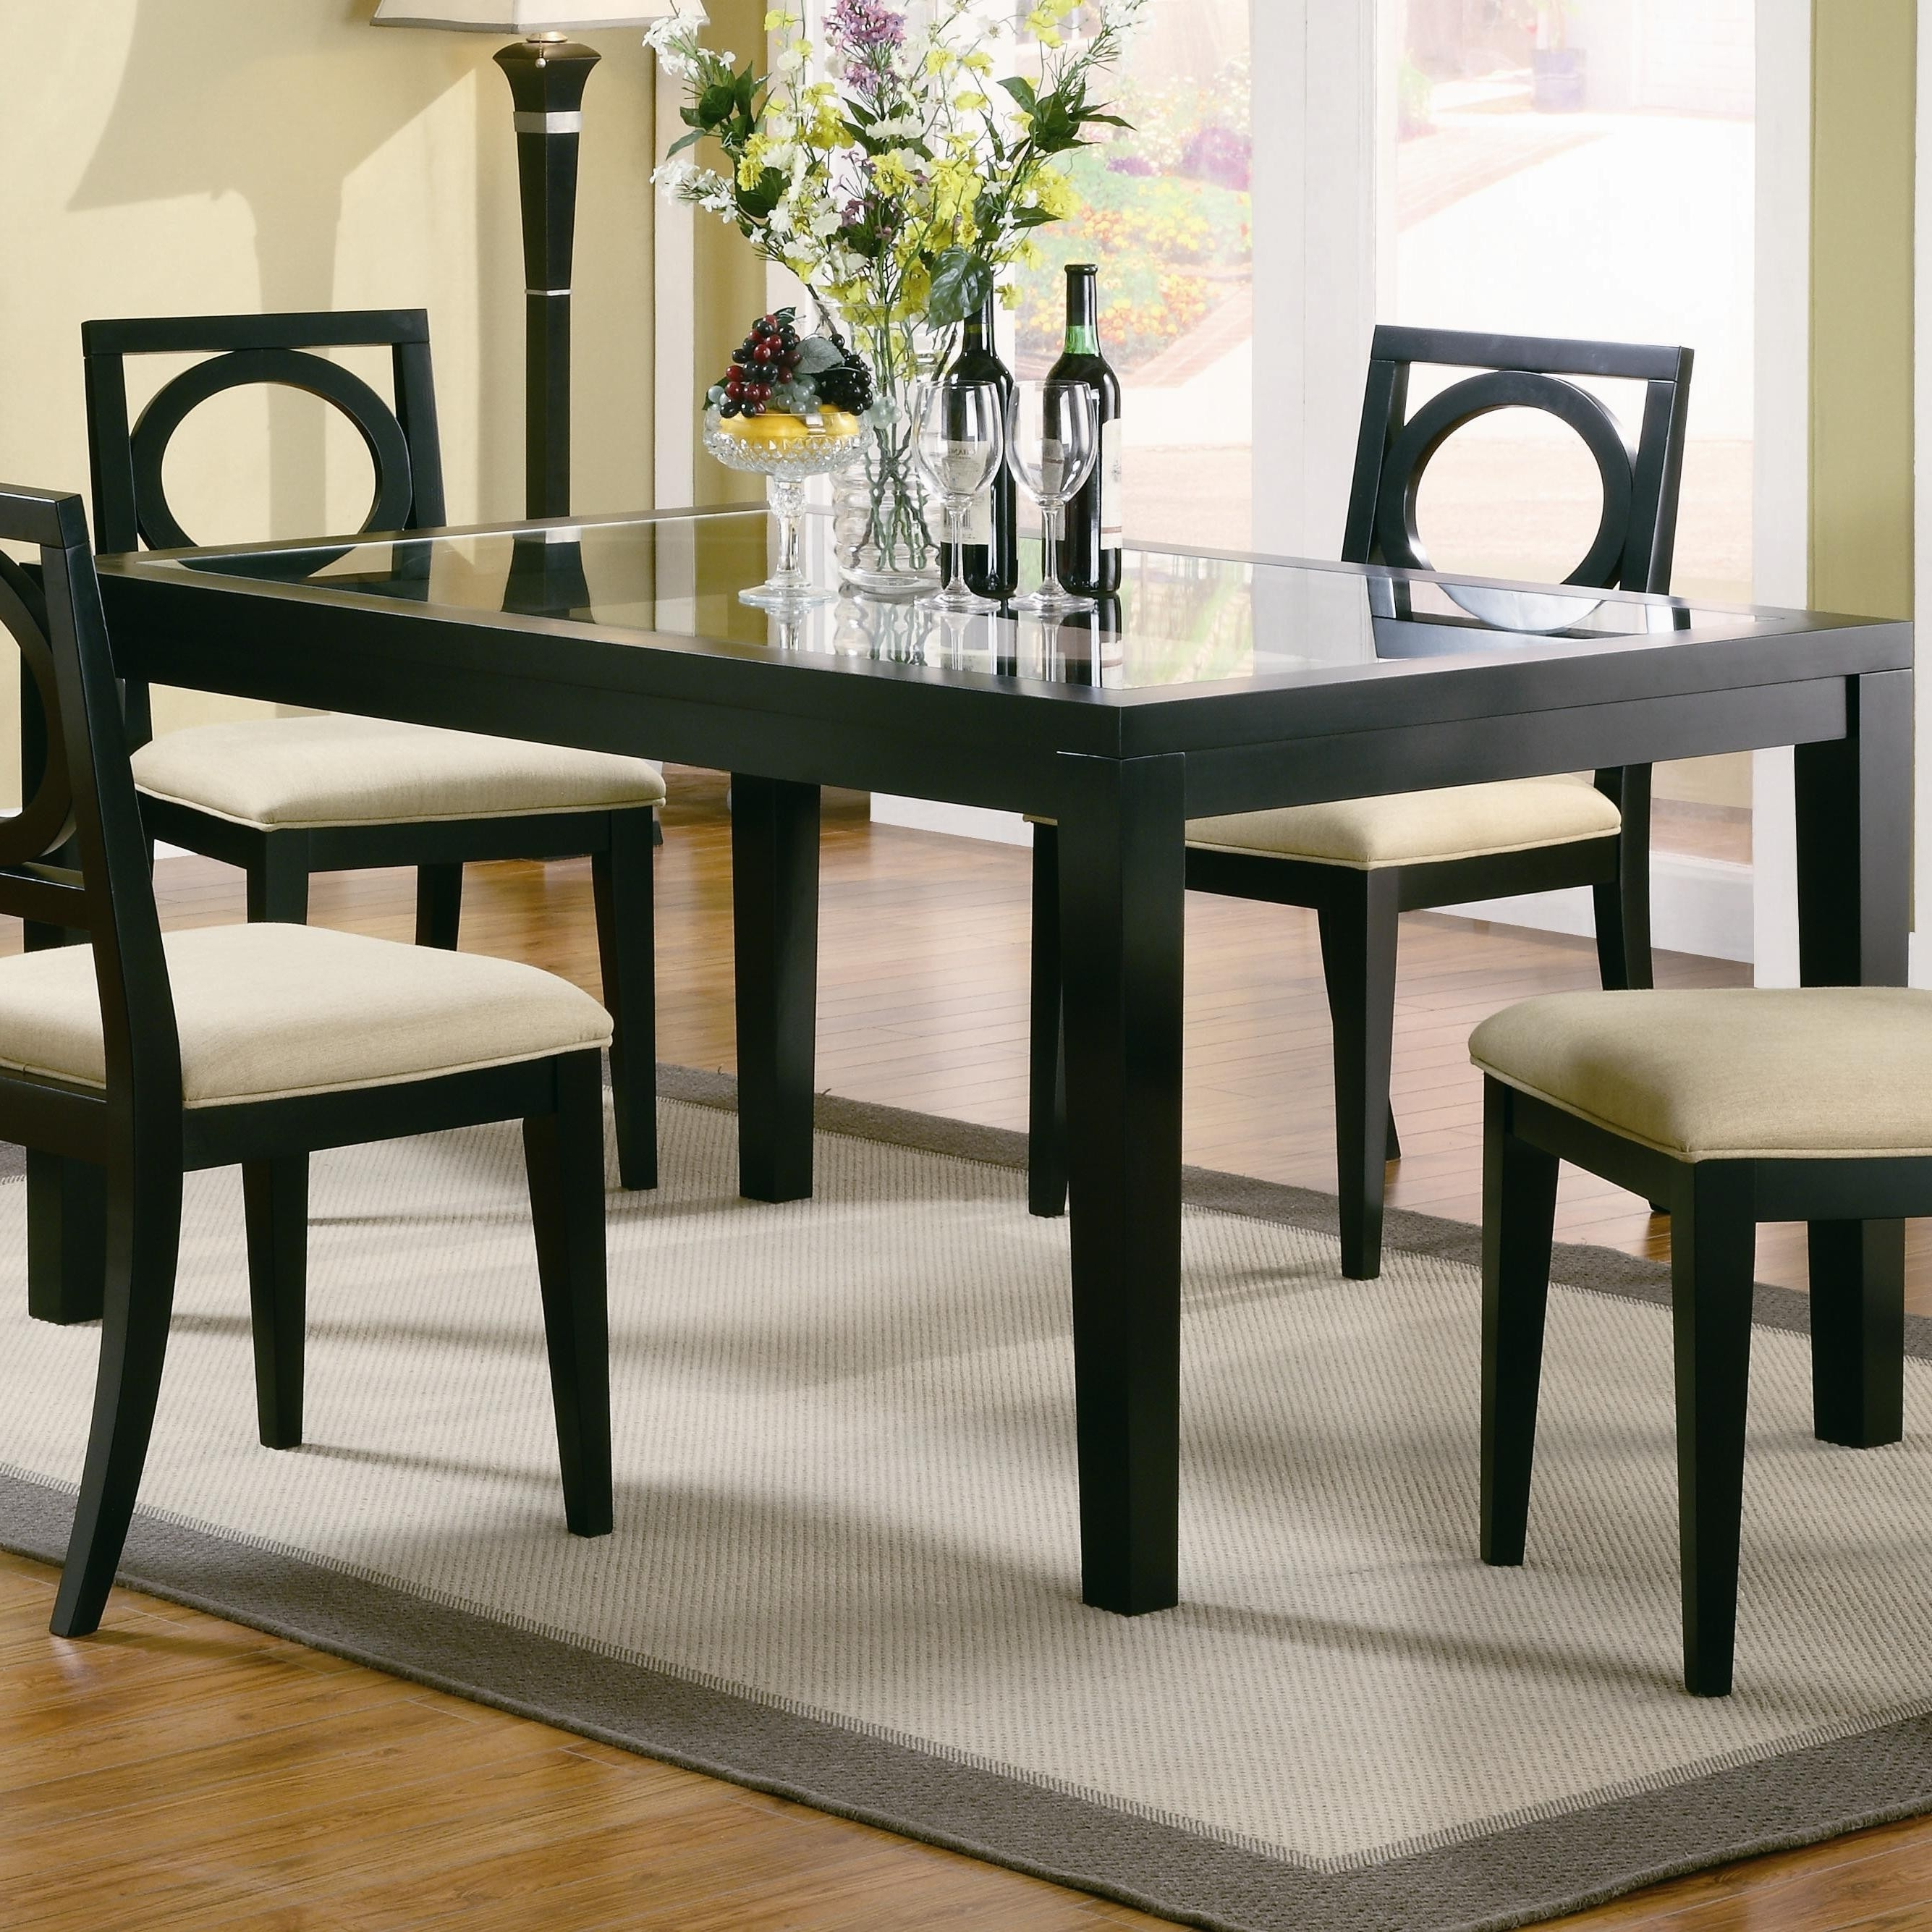 Rectangular Dining Tables Sets For Widely Used Glass Dining Room Sets Plans – Catpillow (View 19 of 25)